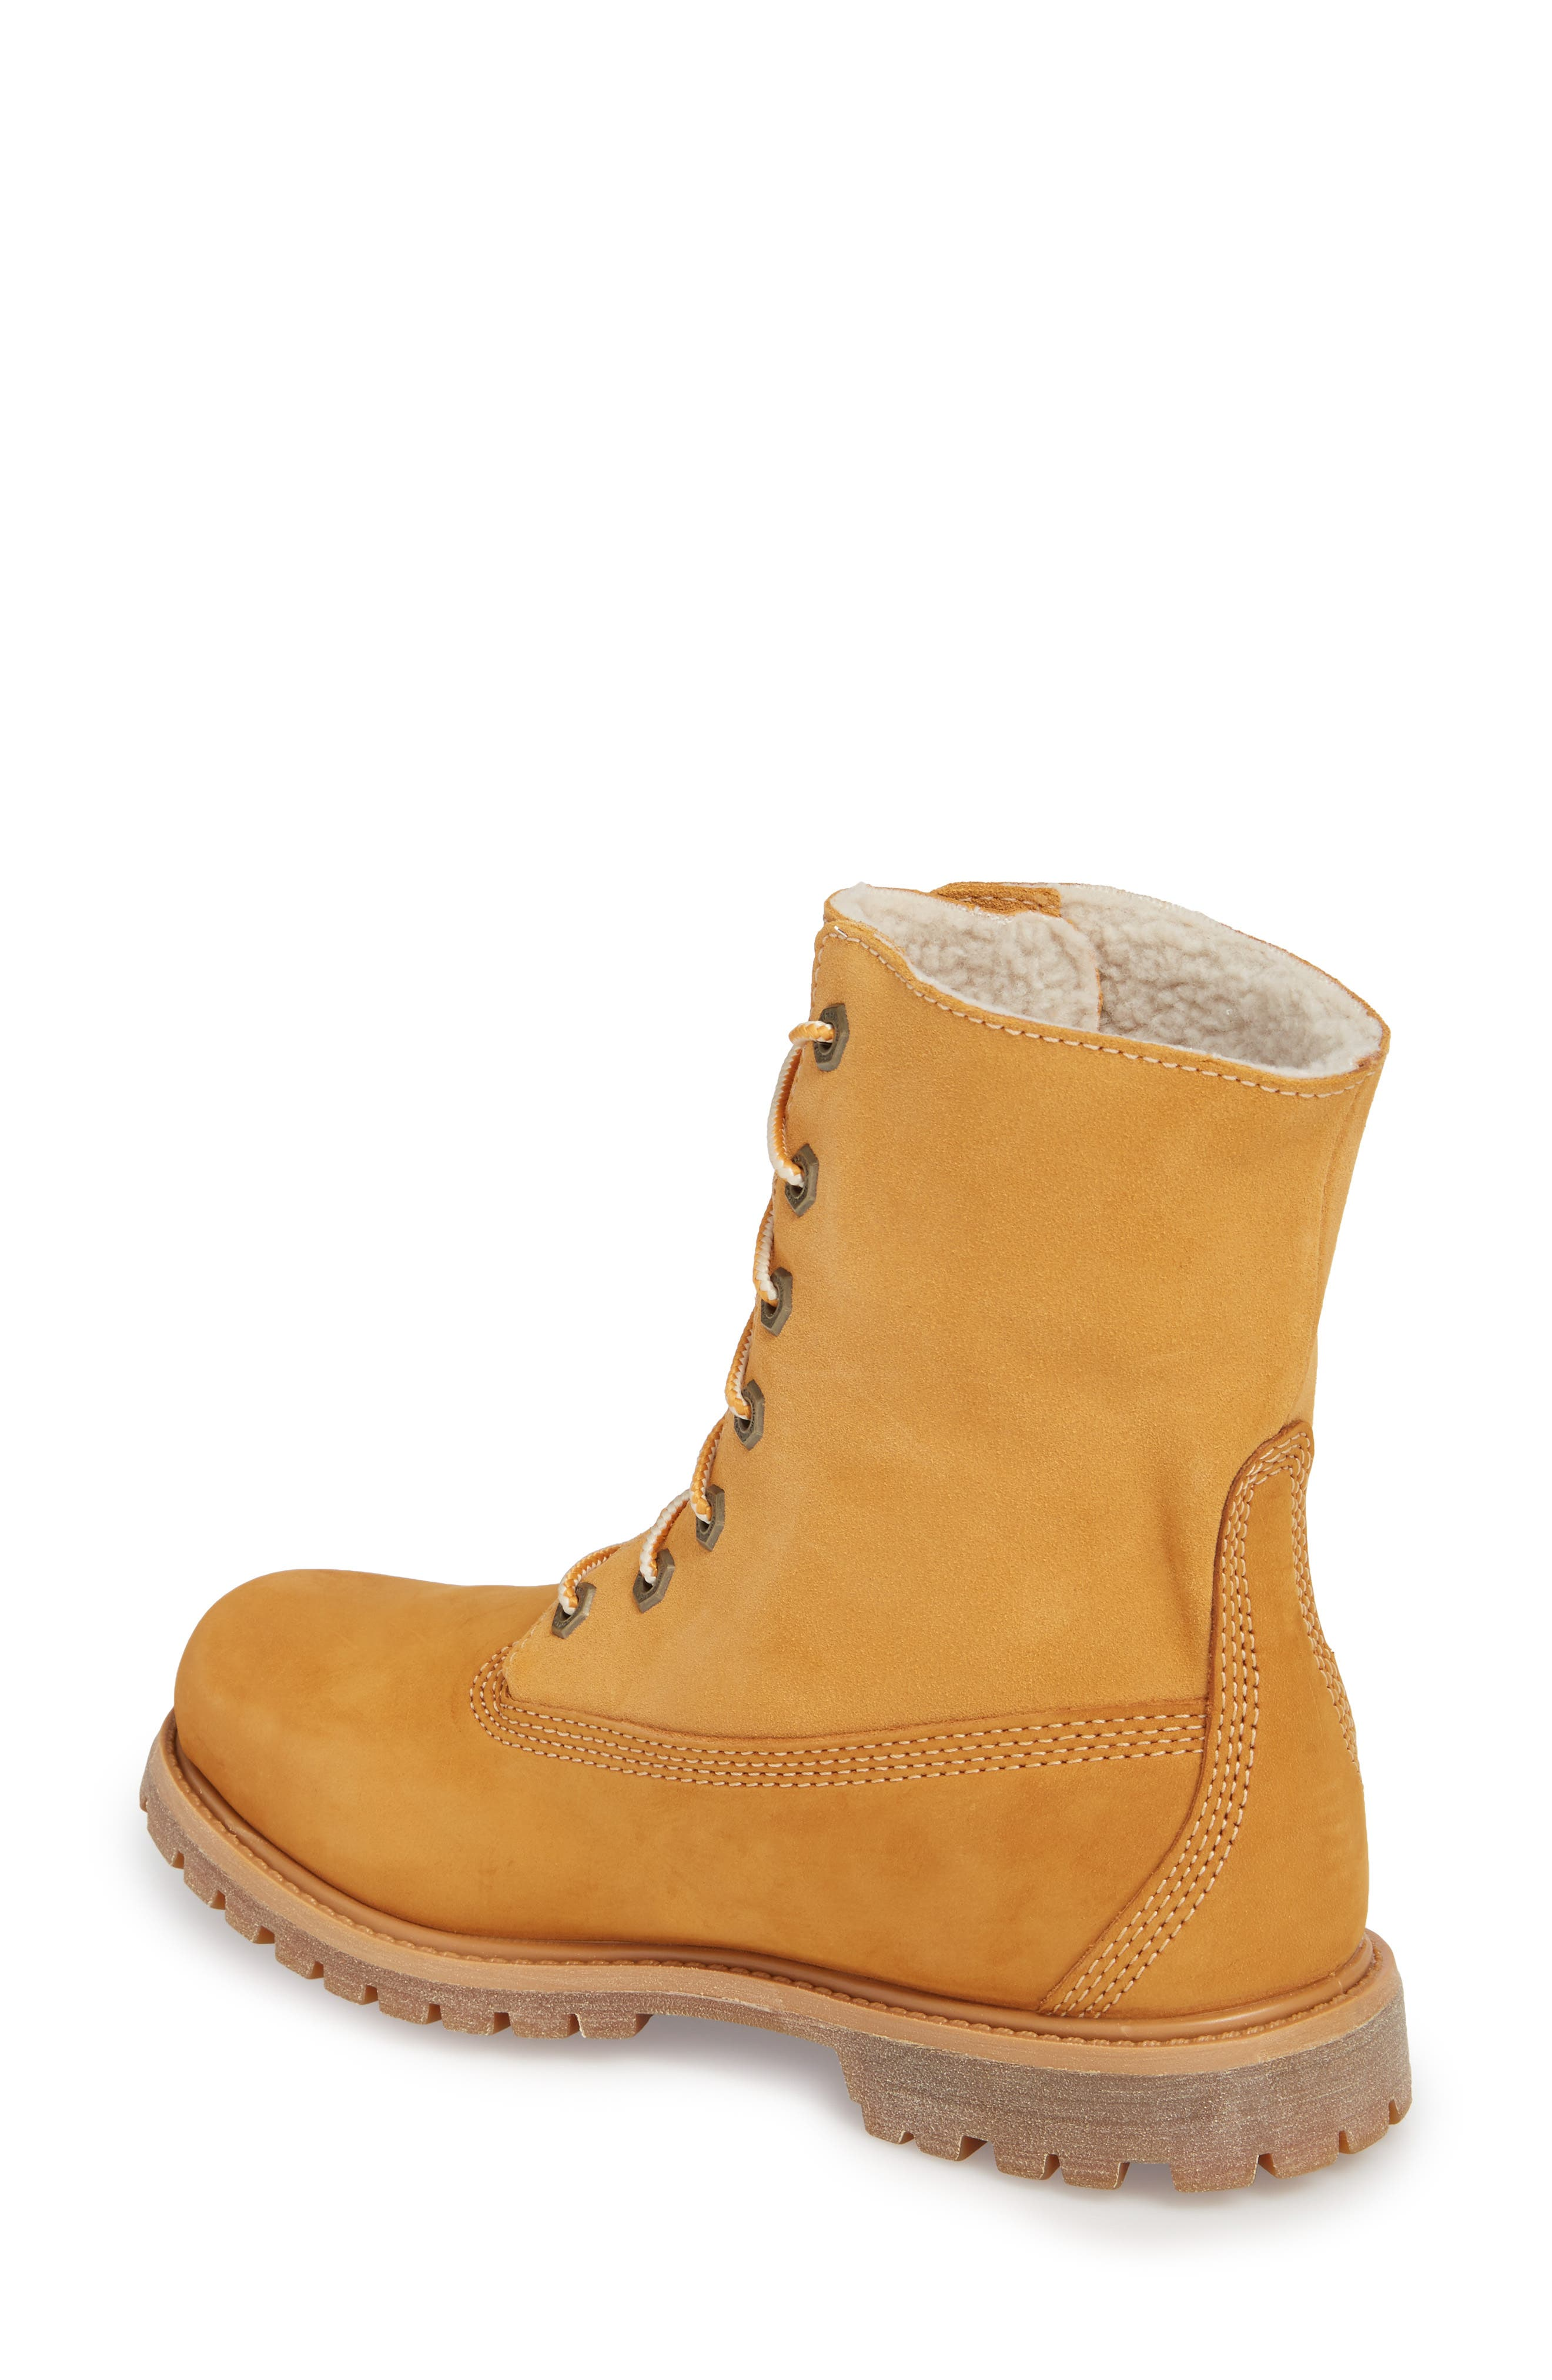 Authentic Waterproof Teddy Fleece Lined Winter Boot,                             Alternate thumbnail 2, color,                             Wheat